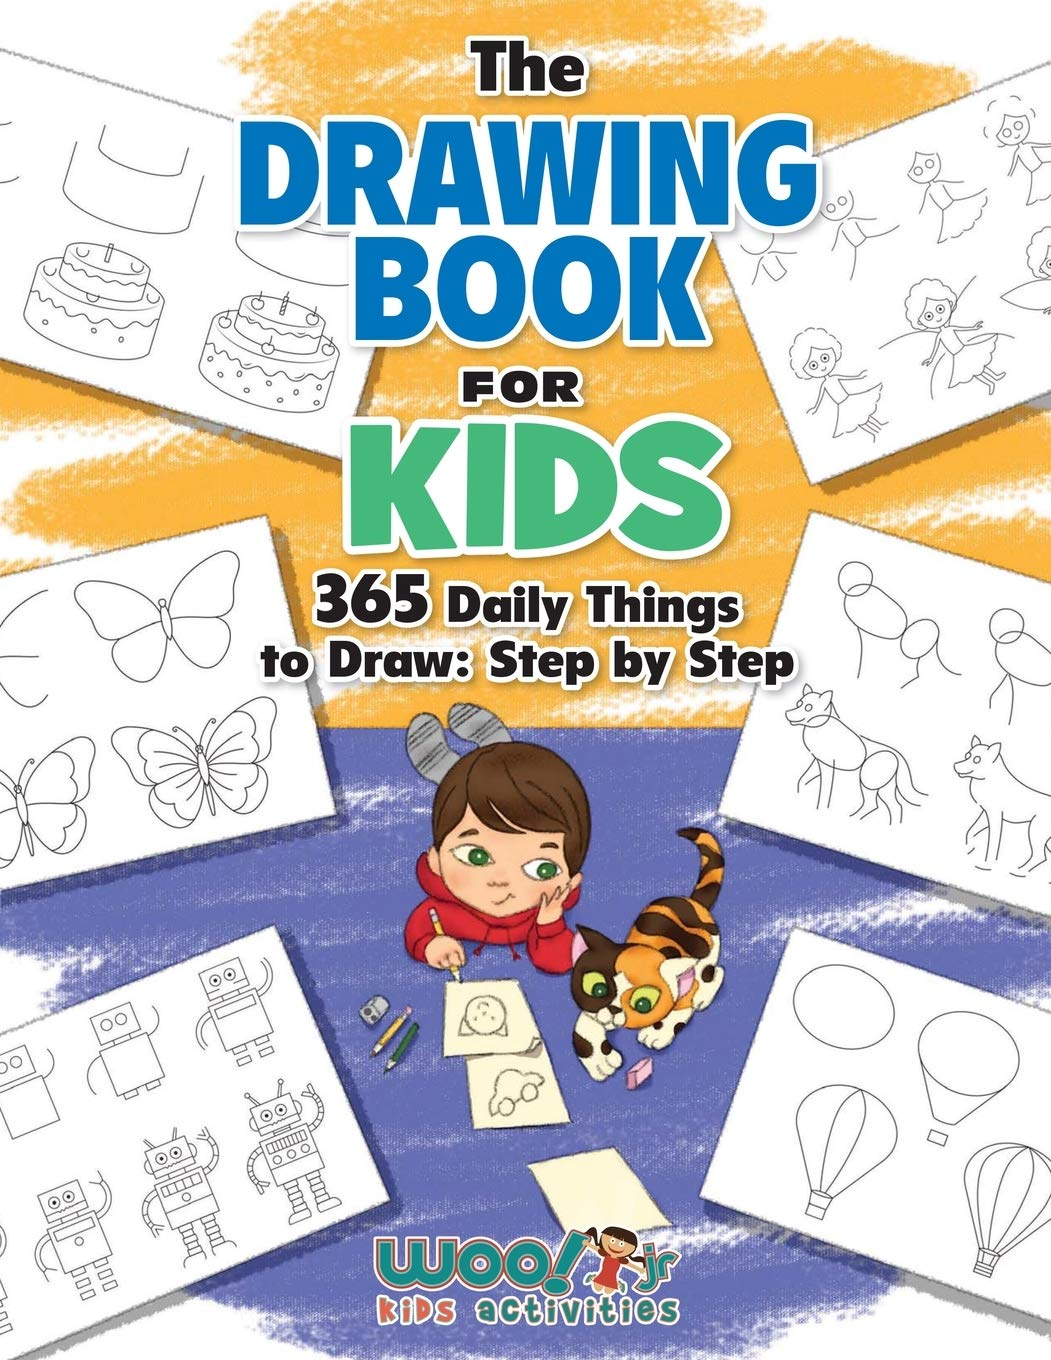 The Drawing Book for Kids: 365 Daily Things to Draw Step by Step (Woo! Jr. Kids Activities Books)